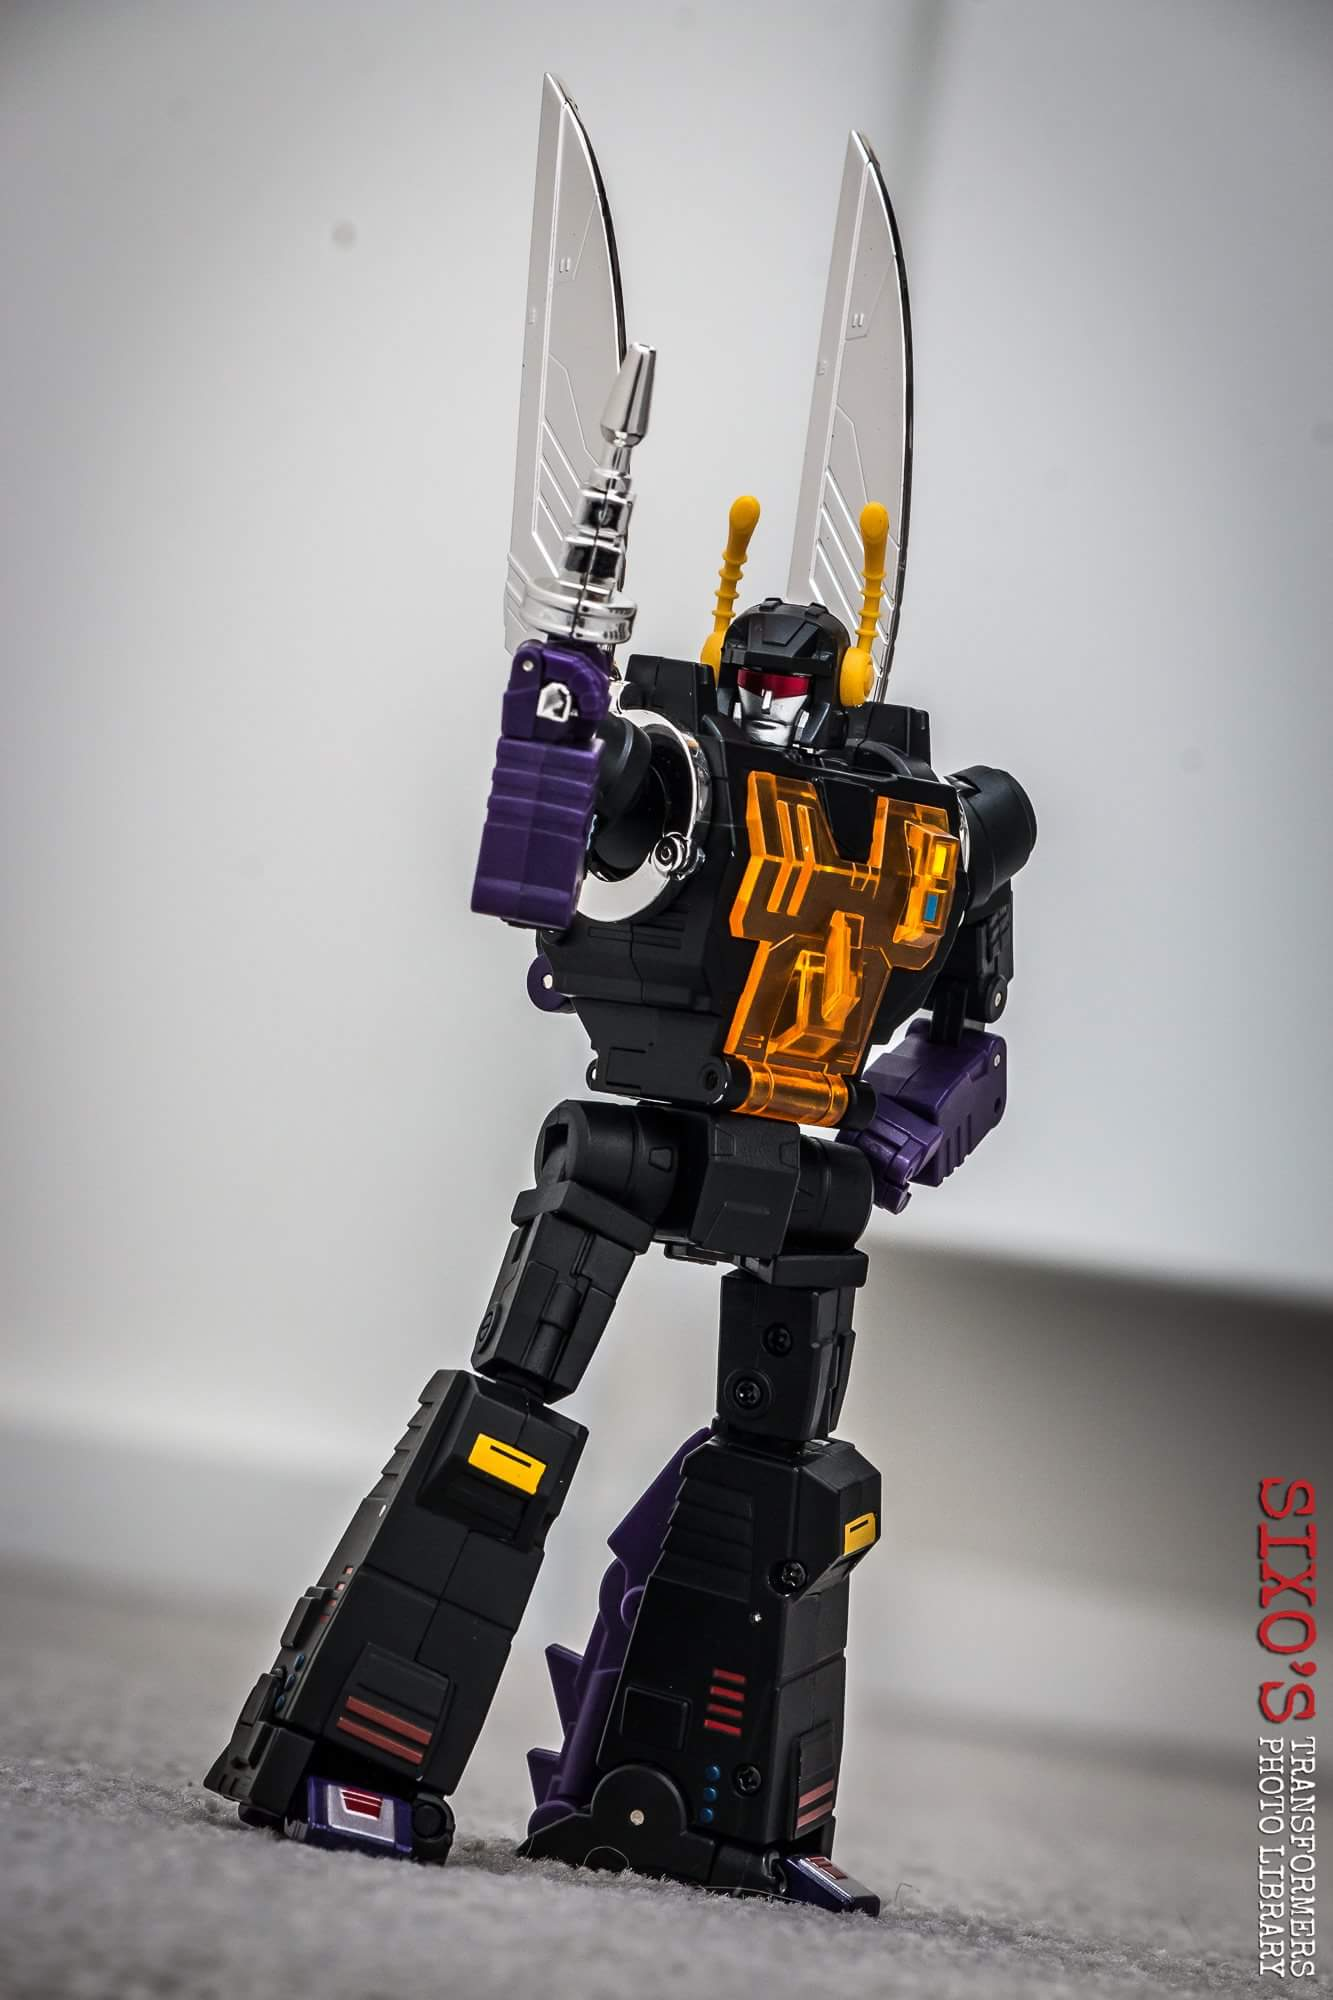 [Fanstoys] Produit Tiers - Jouet FT-12 Grenadier / FT-13 Mercenary / FT-14 Forager - aka Insecticons - Page 4 FgbmNYWj